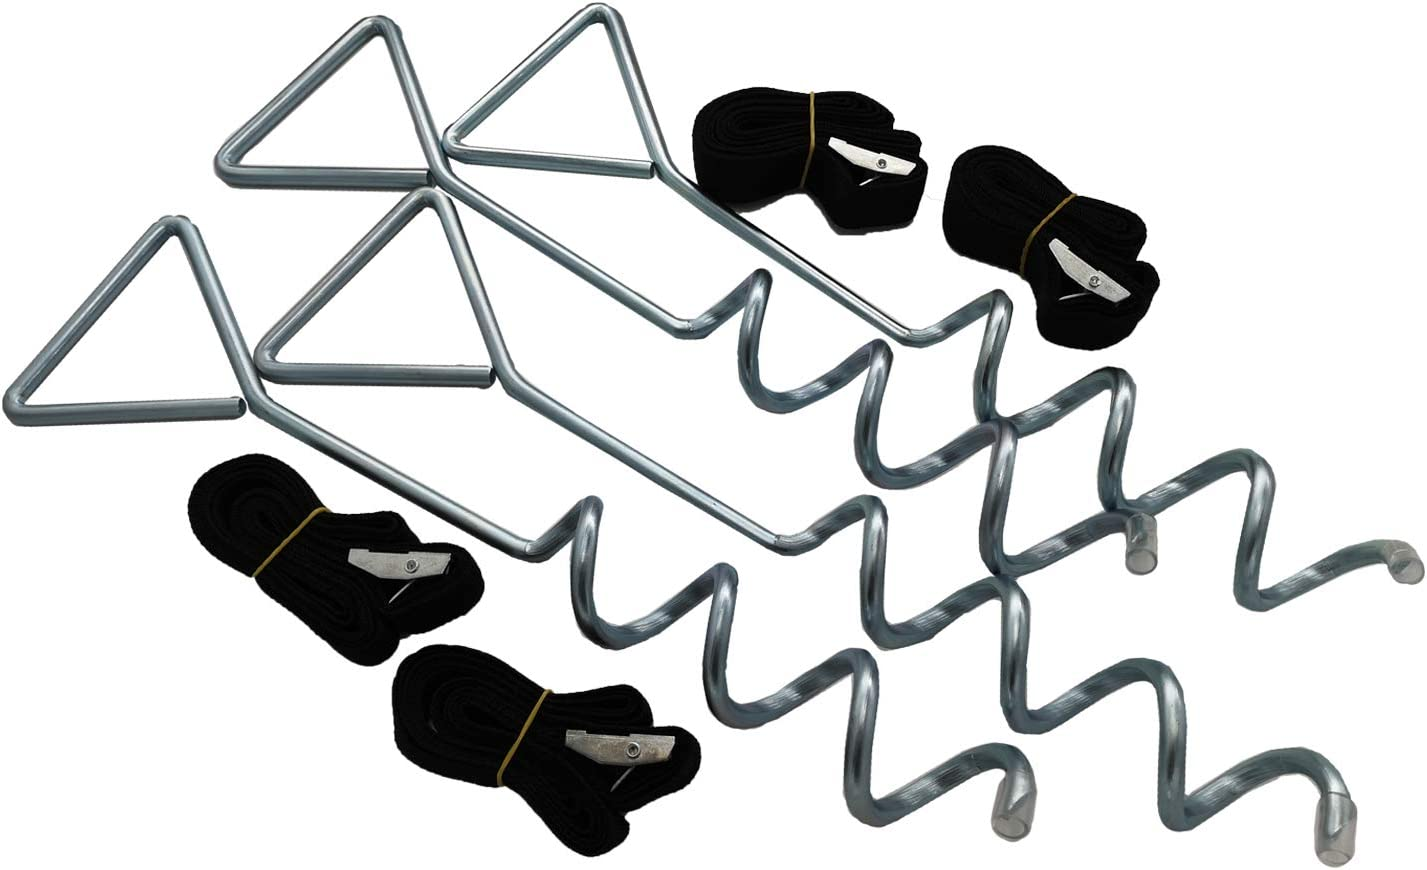 ZhenT Trampoline Anchors Kits,Heavy Duty Tie Down System,Set of 4,Give a Greater Span of Anchorage to Be Safer,Non-Rust Anchors Kit for Trampolines